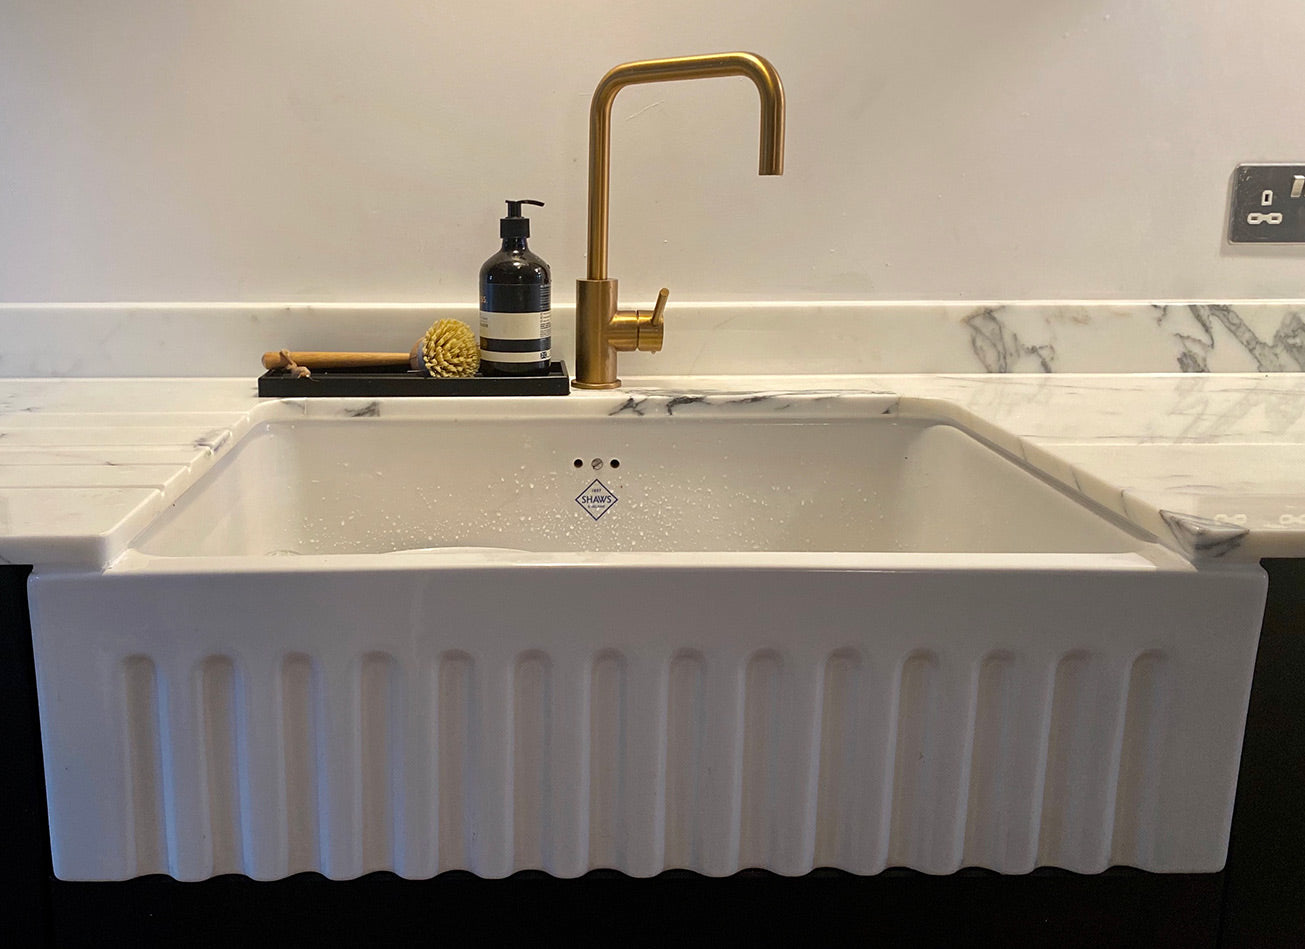 Large white sink in marble countertop with brass tap. Rubber tray with aesop hand wash